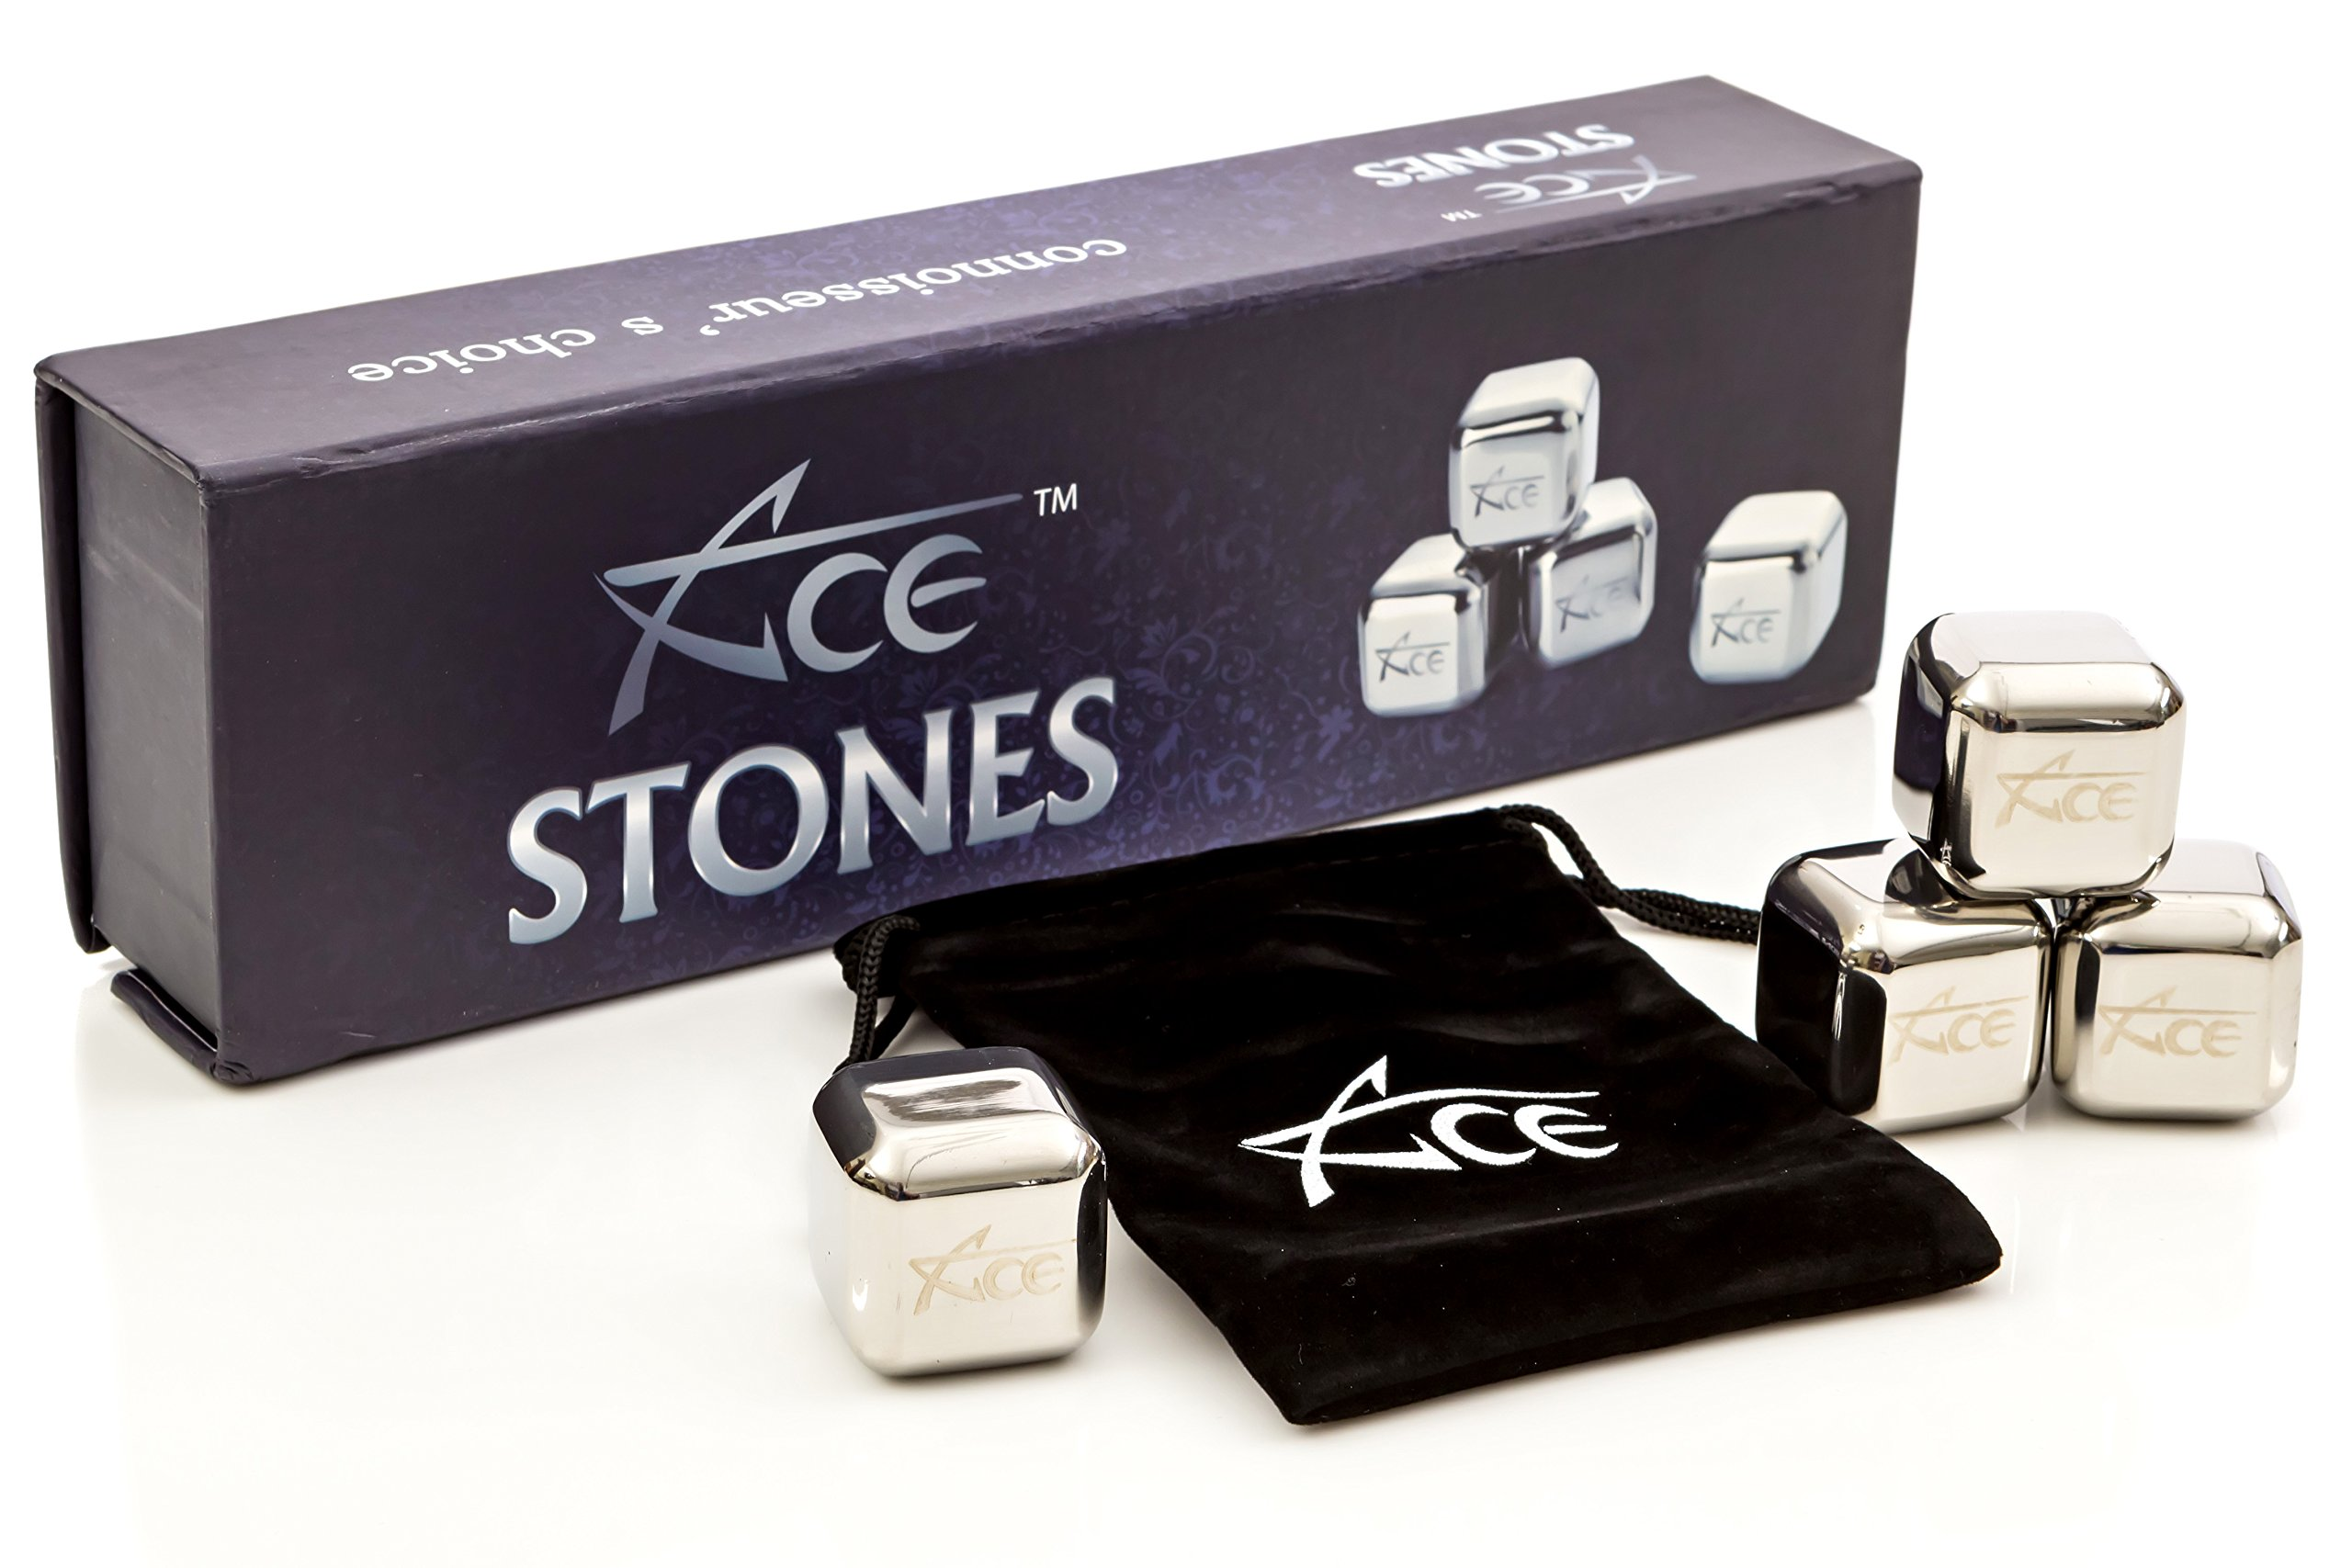 ACE Whiskey Stones - Rock Your Party With Stylish Reusable Stainless Steel Ice Cubes! Comes In Classy EVA Gift Box. See B01M9F7CYM For Tongs Option